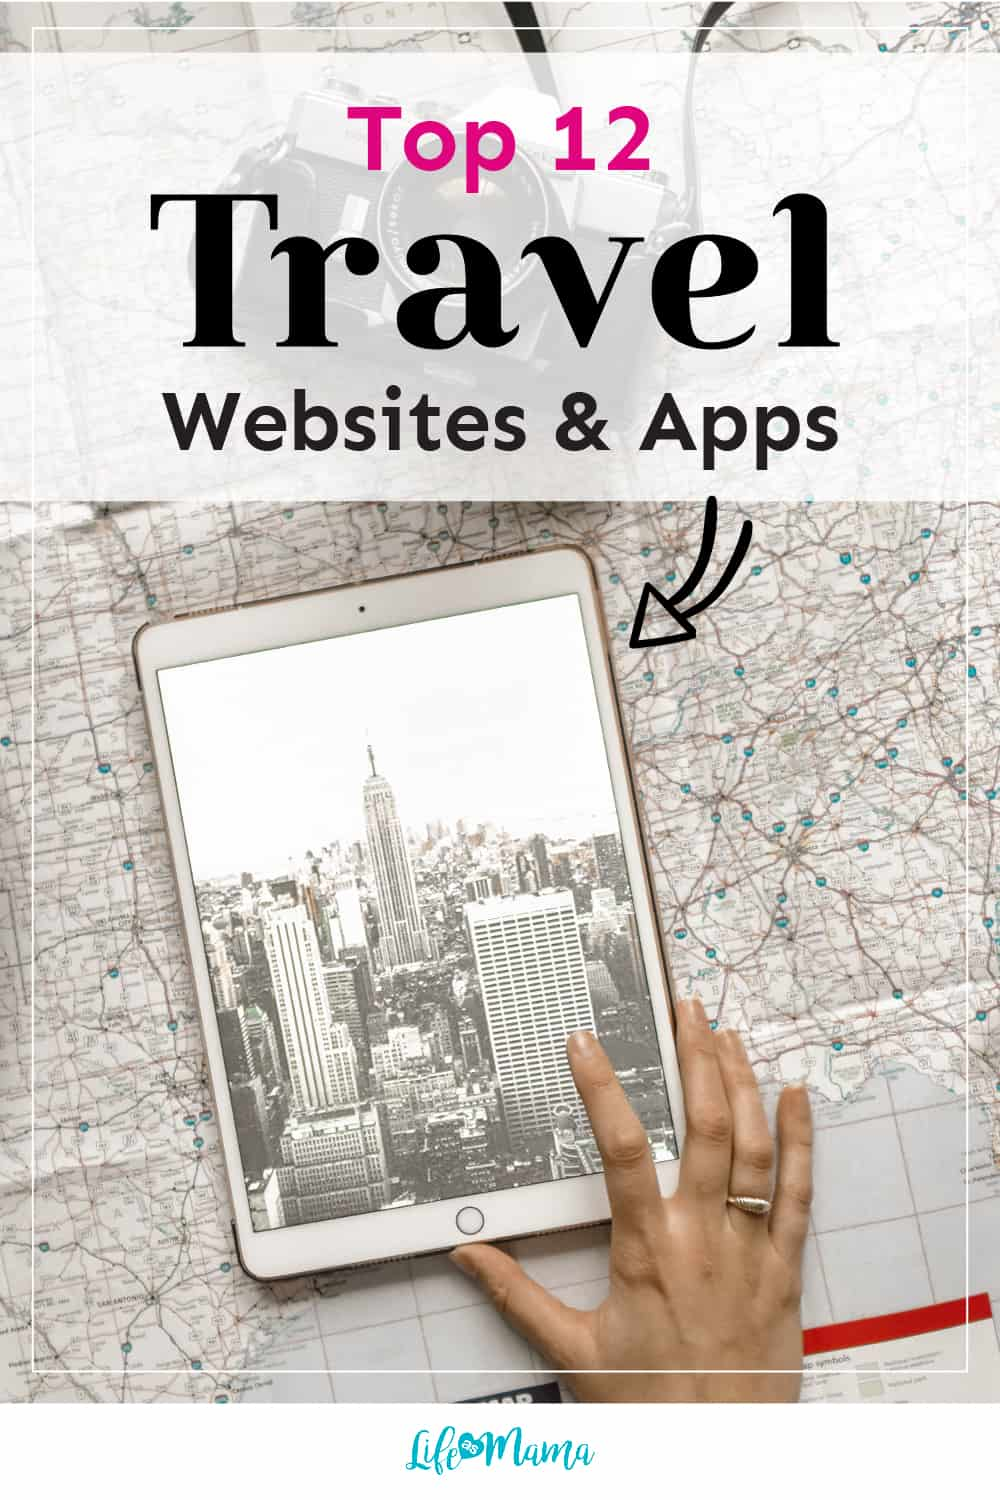 Top 12 Travel Resources